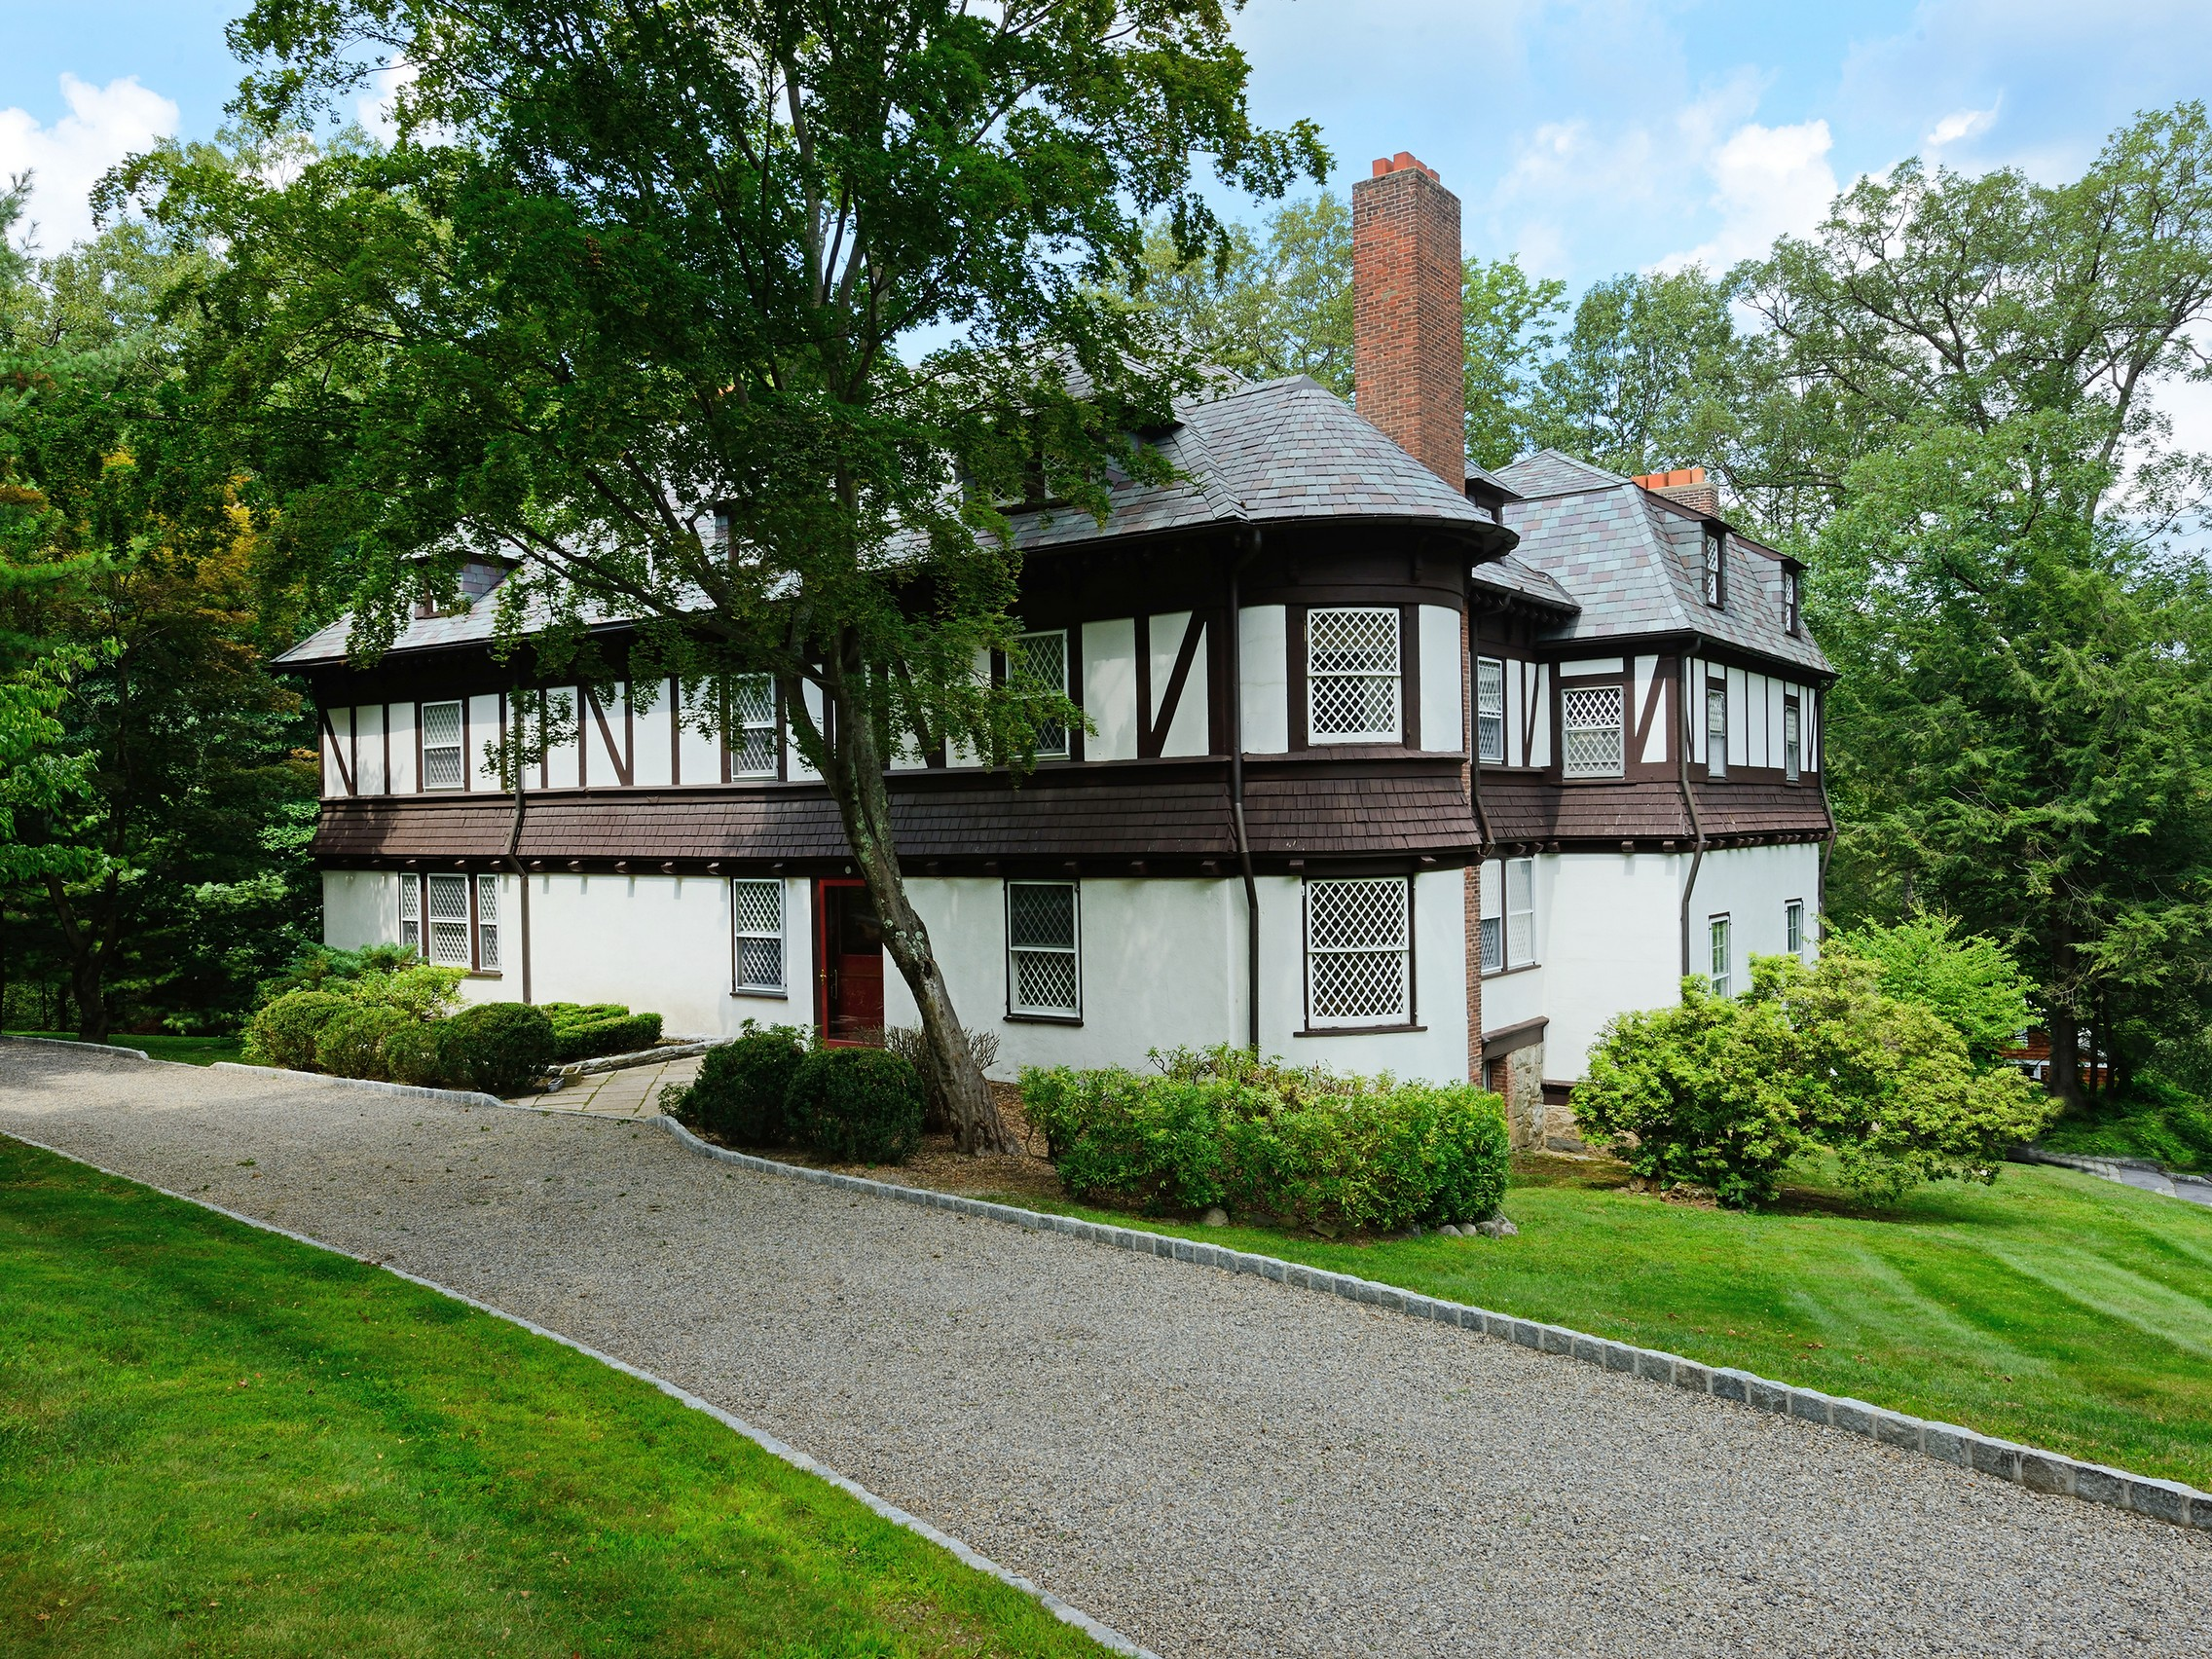 Single Family Home for Sale at Classic Tuxedo Park 4 Ridge Road Tuxedo Park, New York 10987 United States